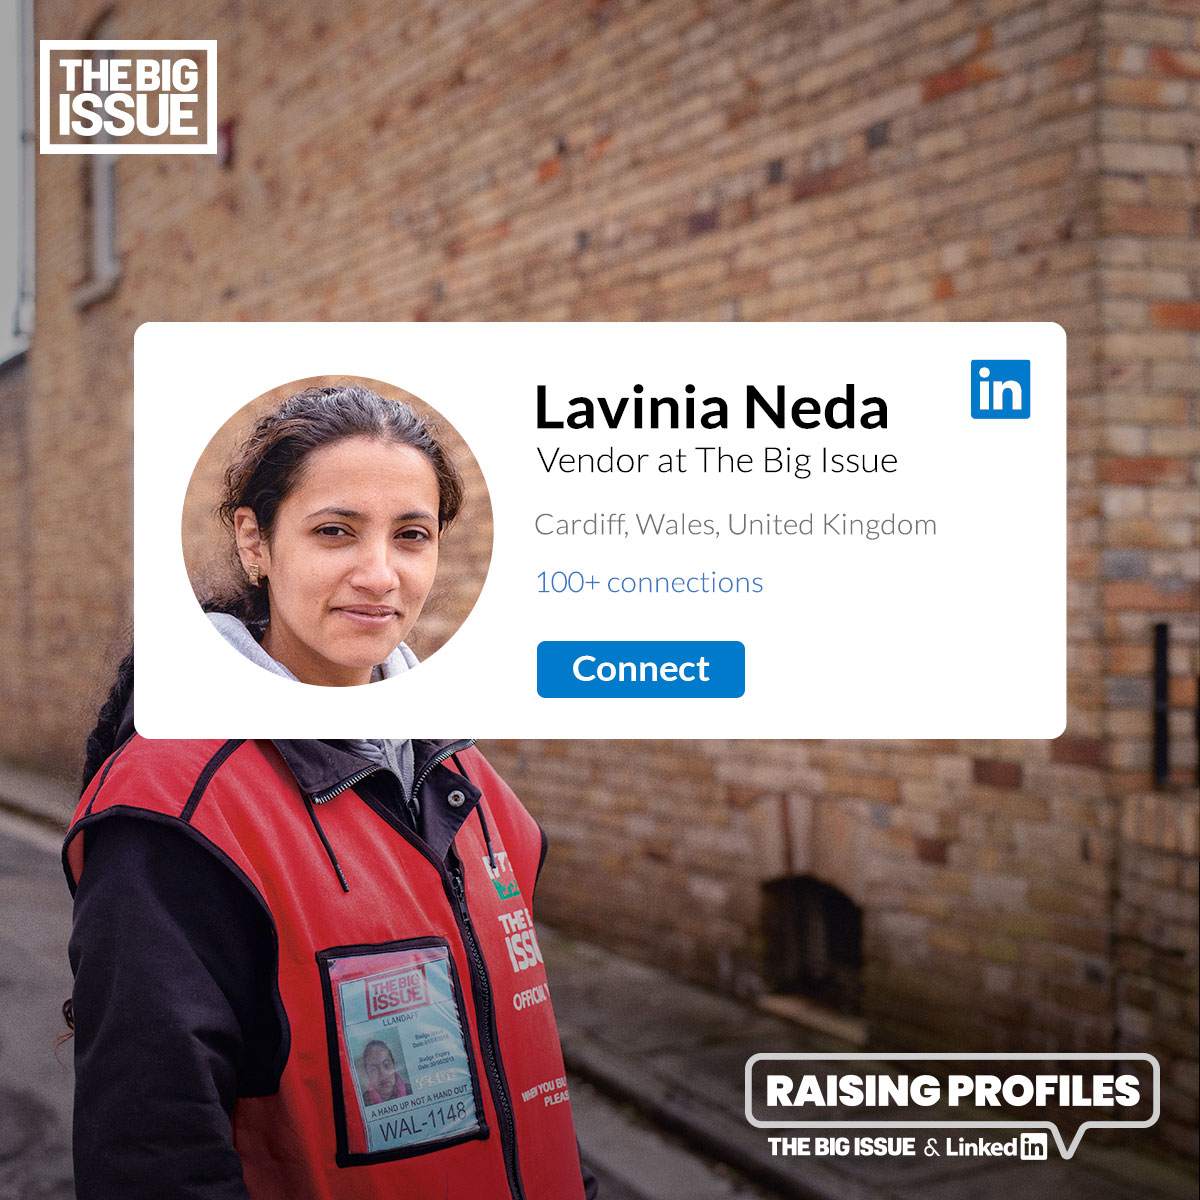 The Big Issue vendor - Lavinia Neda